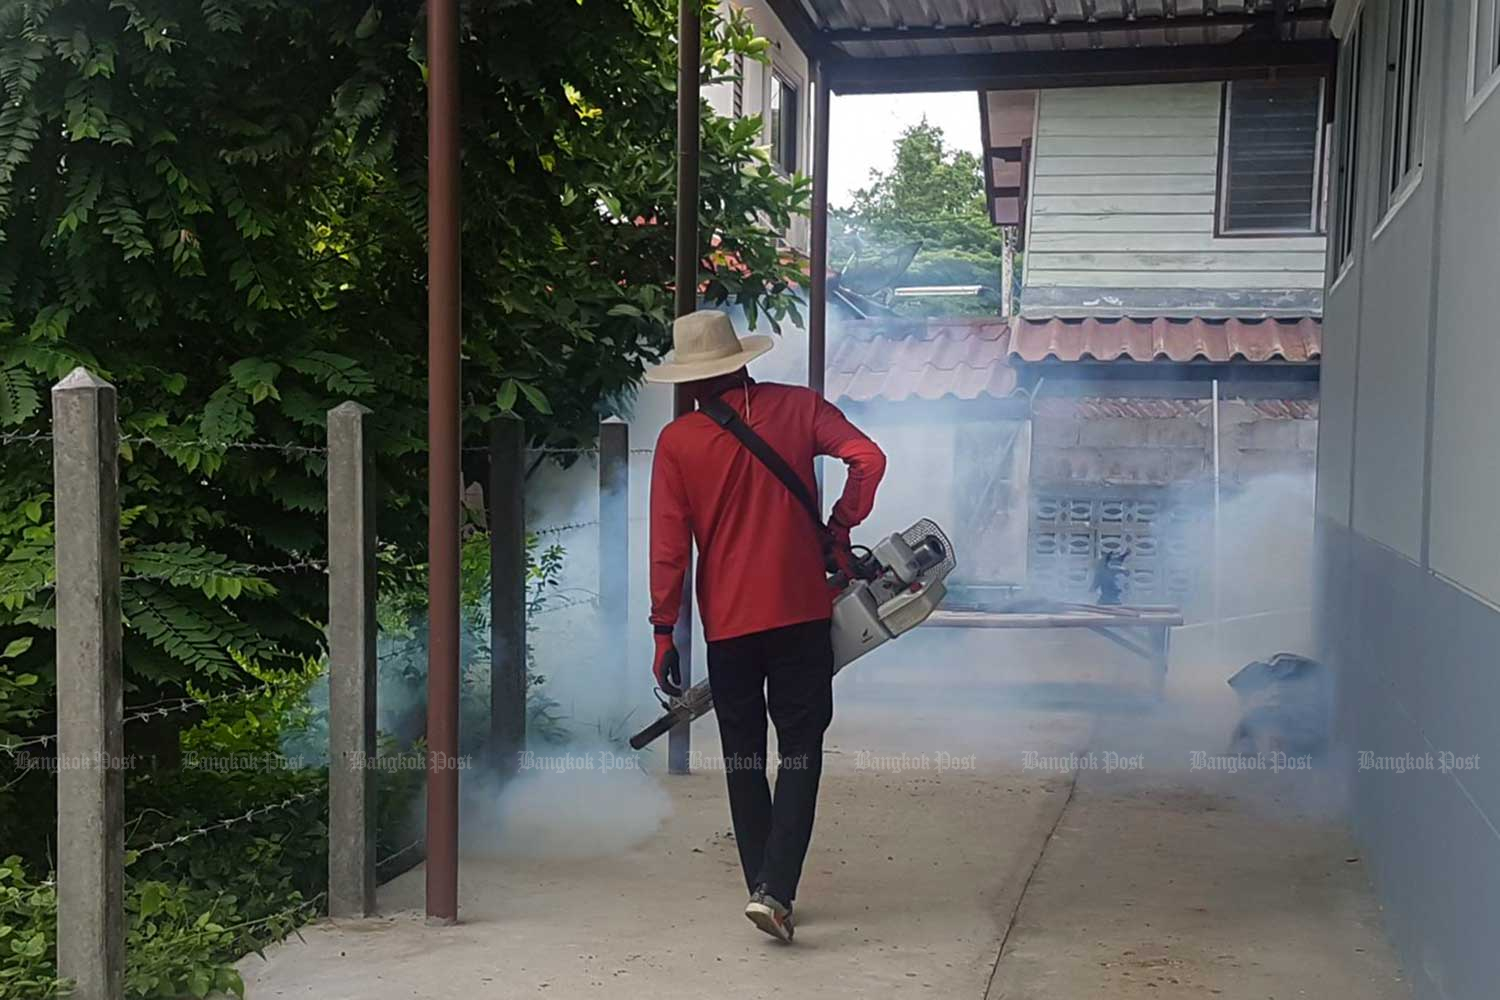 """A health volunteer sprays smoke during an anti-malaria fumigation drive in Phimai district, Nakhon Ratchasima. (Bangkok Post photo) """"title ="""" A health volunteer sprays smoke during an anti-malaria fumigation drive in Phimai district, Nakhon Ratchasima. (Bangkok Post photo) """"/> </figure><figcaption>  LONDON: Strains of Malaria Resistant to Two Key Anti-Malarials (Bangkok Post photo) </figure><figcaption>  drugs are becoming more dominant in Vietnam, Laos and northern Thailand after spreading rapidly from Cambodia, scientists warned on Monday. </p> <p> """"We have discovered (it) had spread aggressively, replacing local malaria parasites, and had become the dominant strain in Vietnam, Laos and northeastern Thailand, """"said Roberto Amato, who worked with a team from the British Wellcome Sanger Institute and Oxford University and Thailand's Mahidol University. </p> <p> Malaria is caused by Plasmodium parasites which are carri </p> <p> Nearly 220 million people were infected with malaria in 201<div class="""